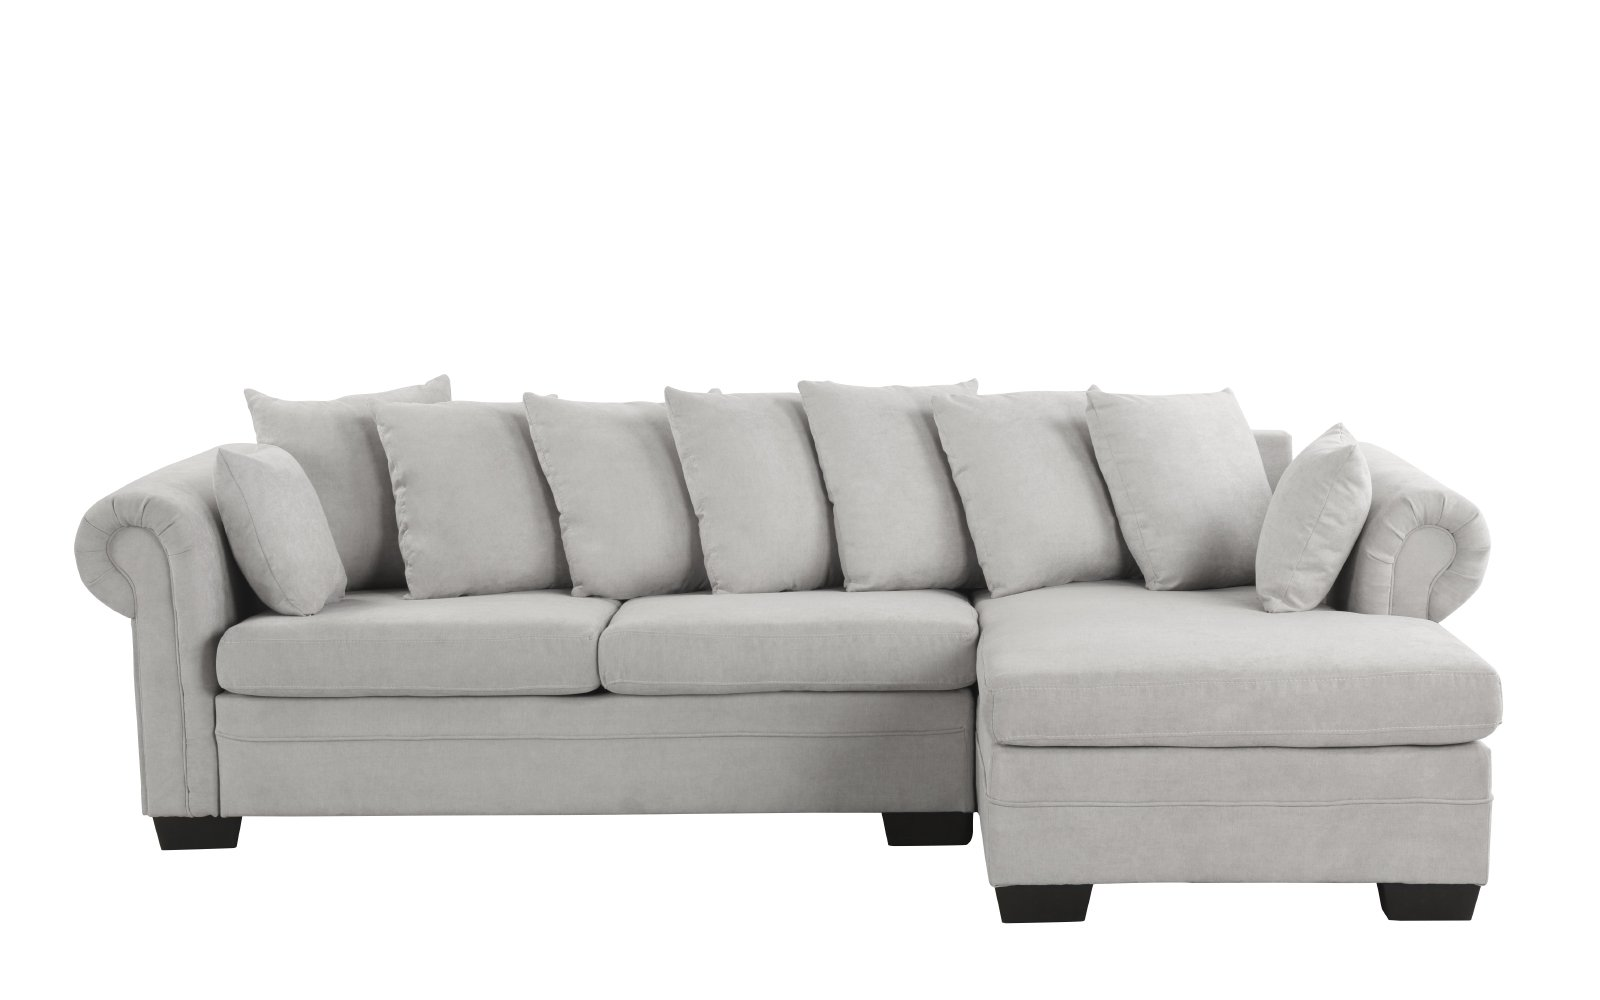 Large Brush Microfiber Sectional Sofa L-Shape Couch Extra ...